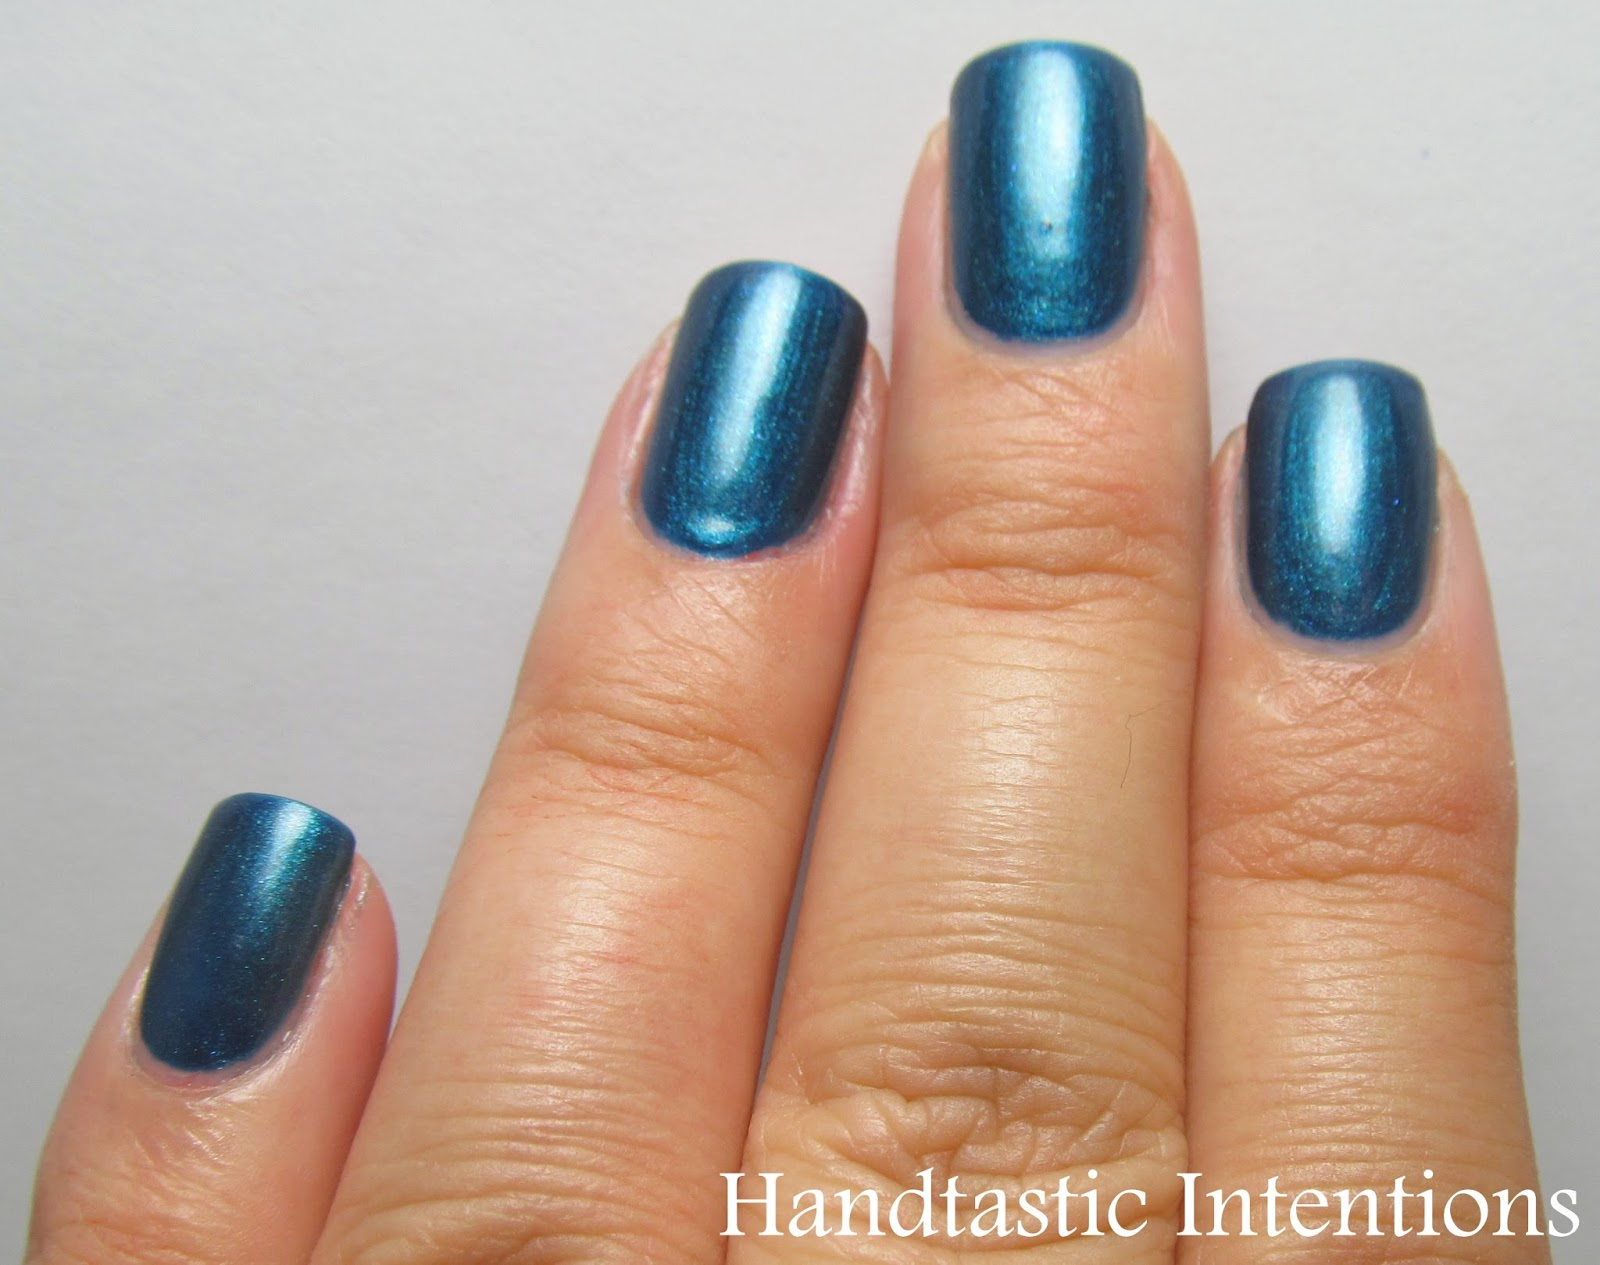 Handtastic Intentions Swatch And Review Of Opi Yodel Me